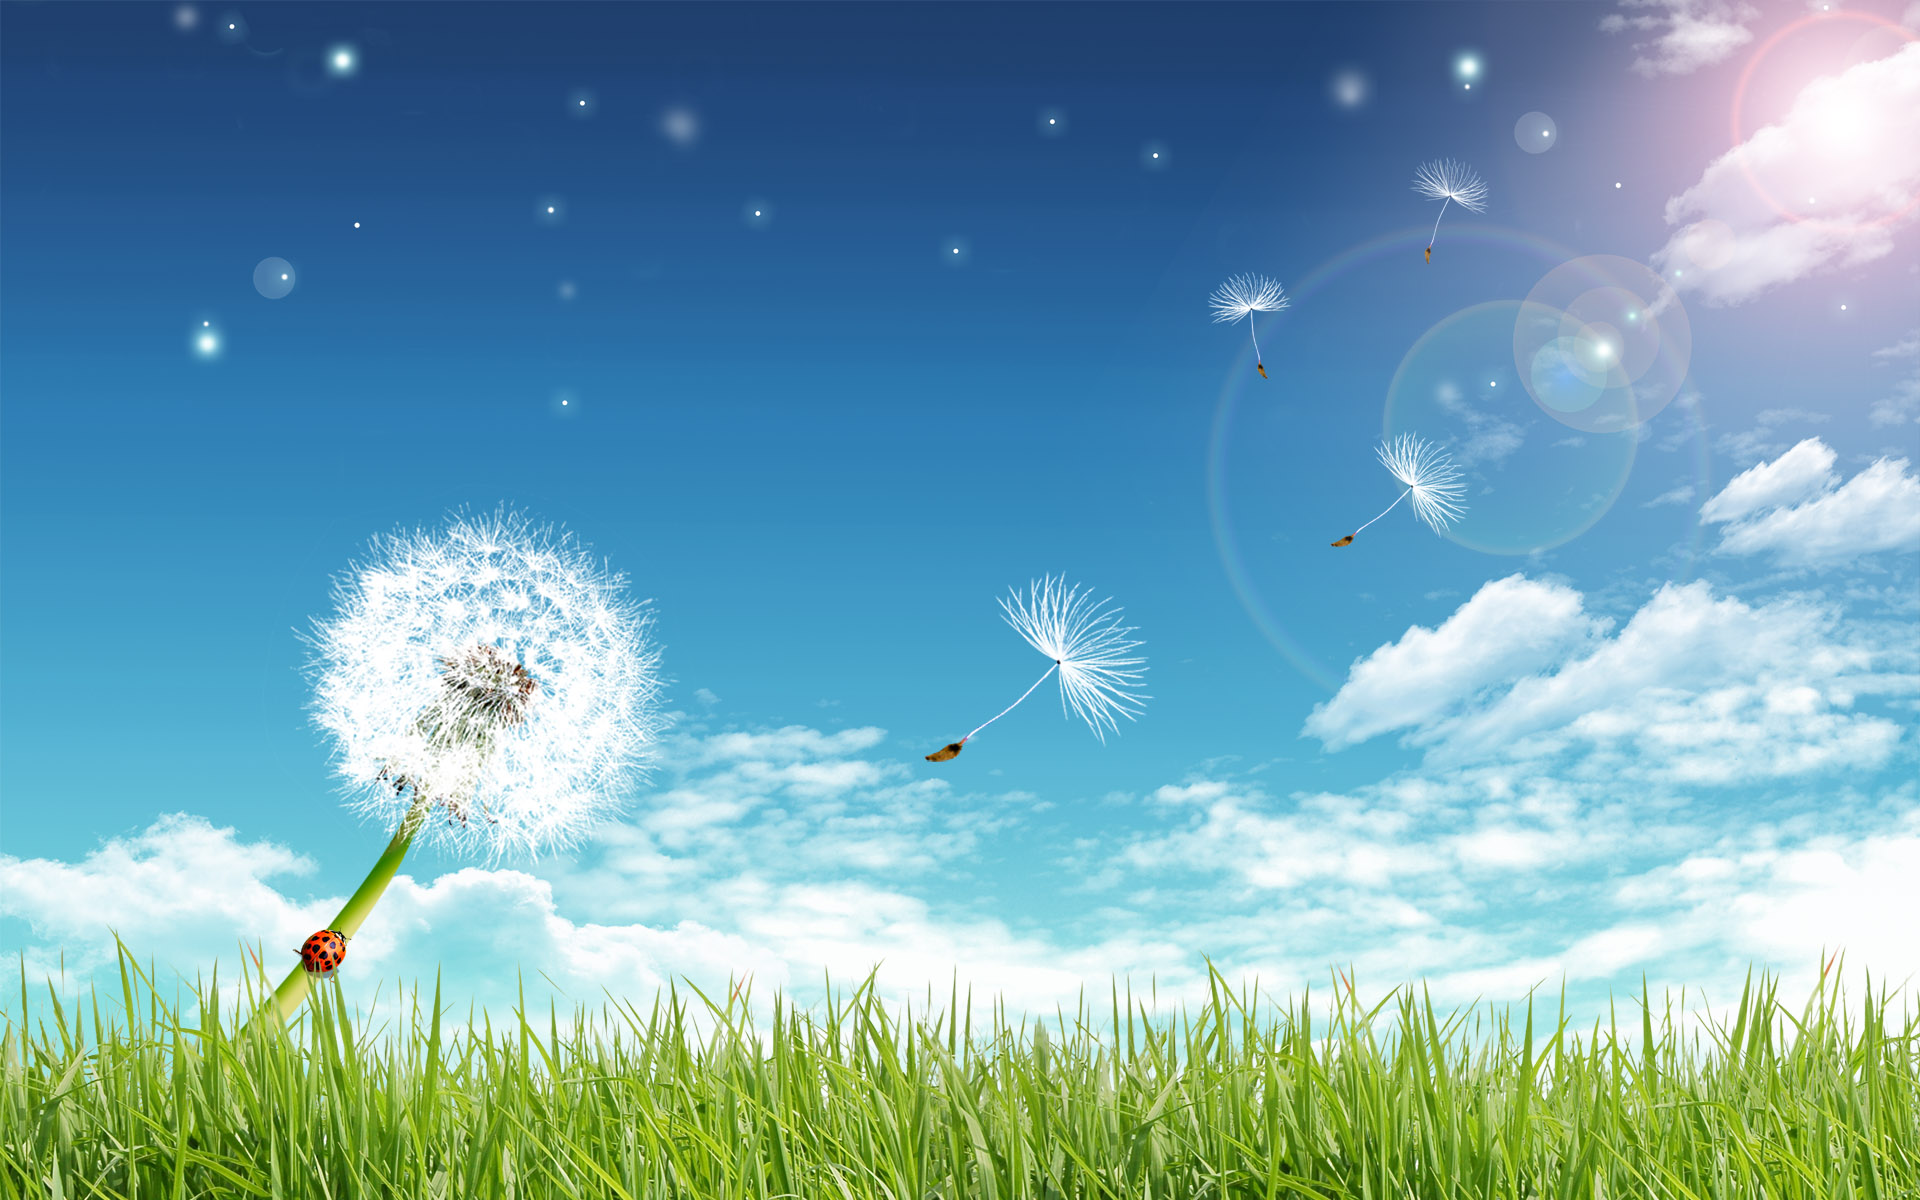 dandelion desktop wallpaper 1920x1200